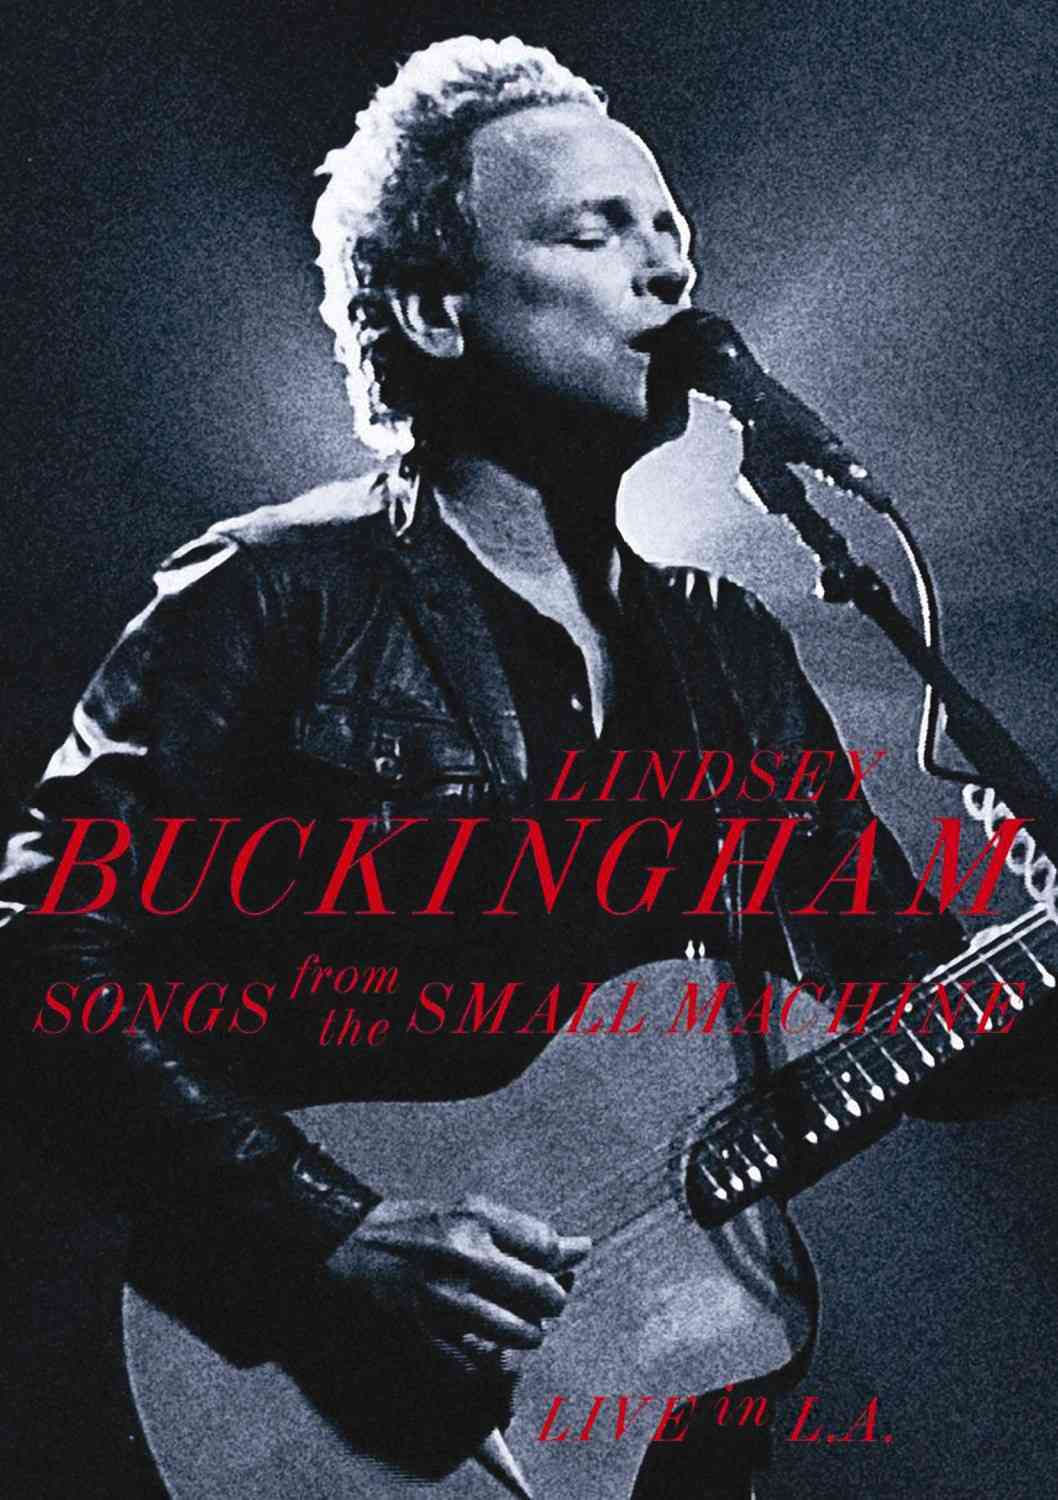 SONGS FROM THE SMALL MACHINE:LIVE IN BY BUCKINGHAM,LINDSEY (DVD)